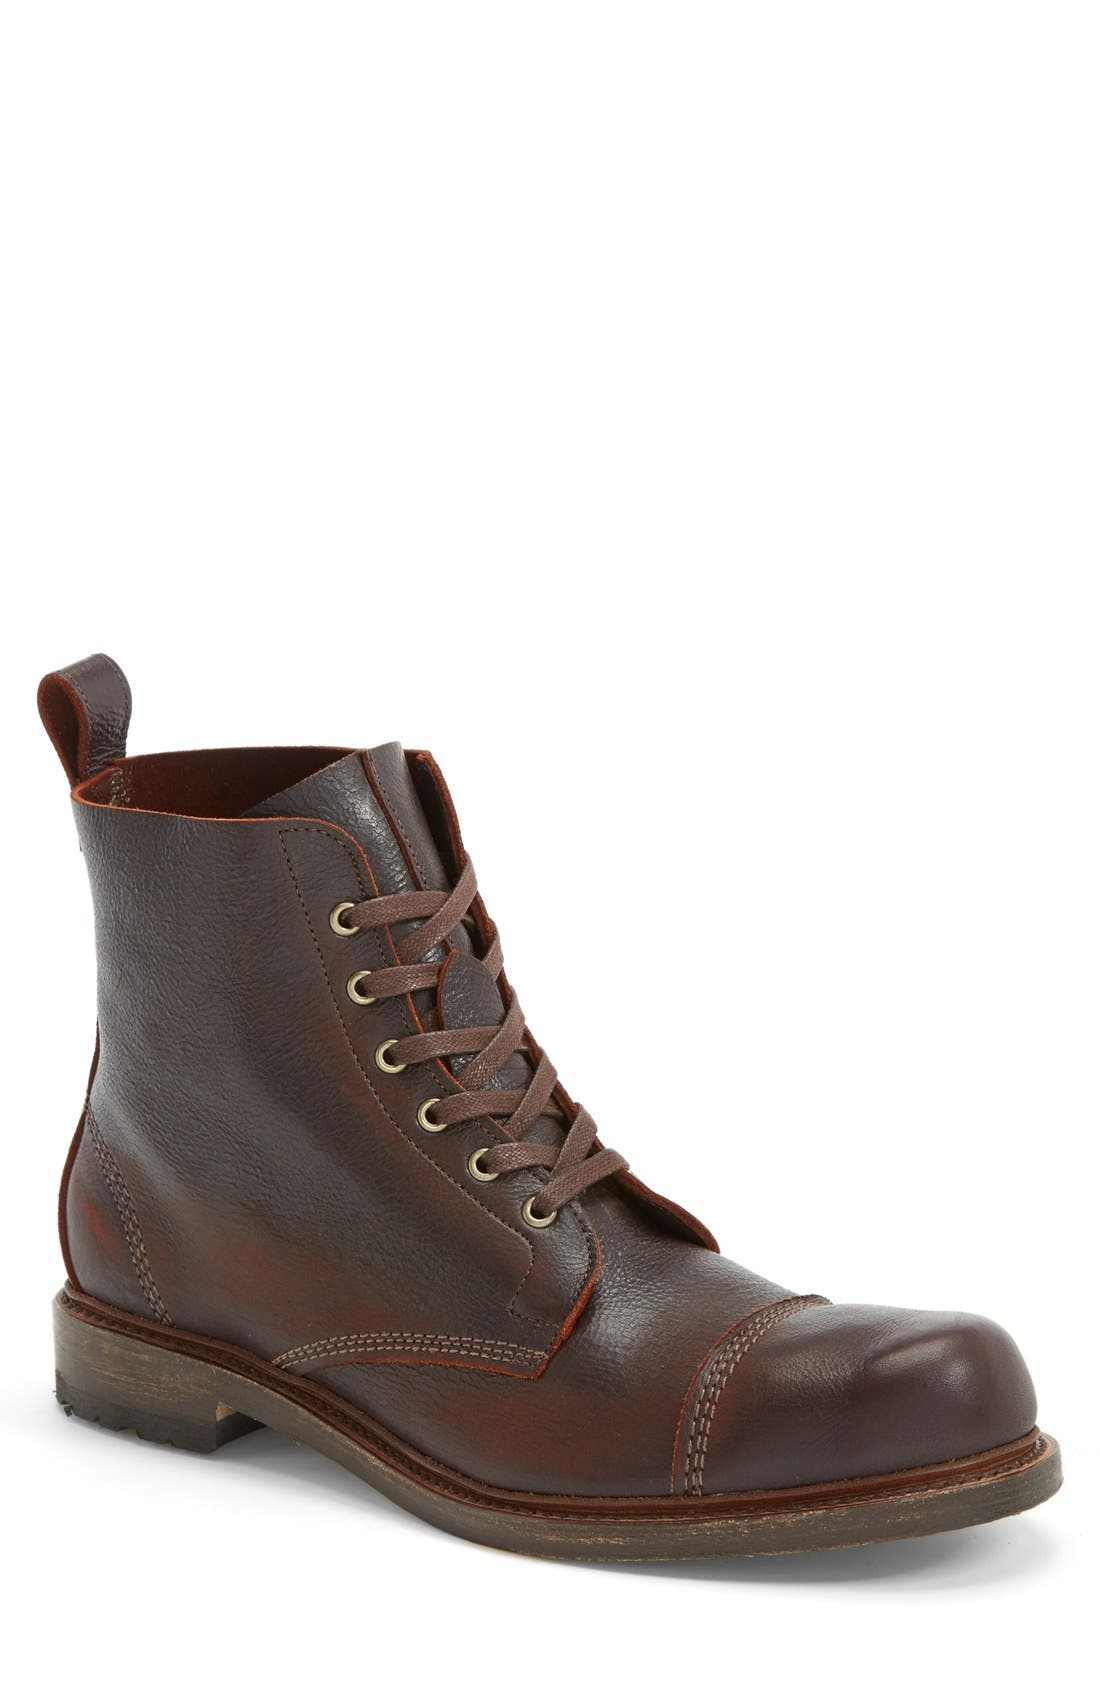 ALLEN EDMONDS 'Normandy' Cap Toe Boot